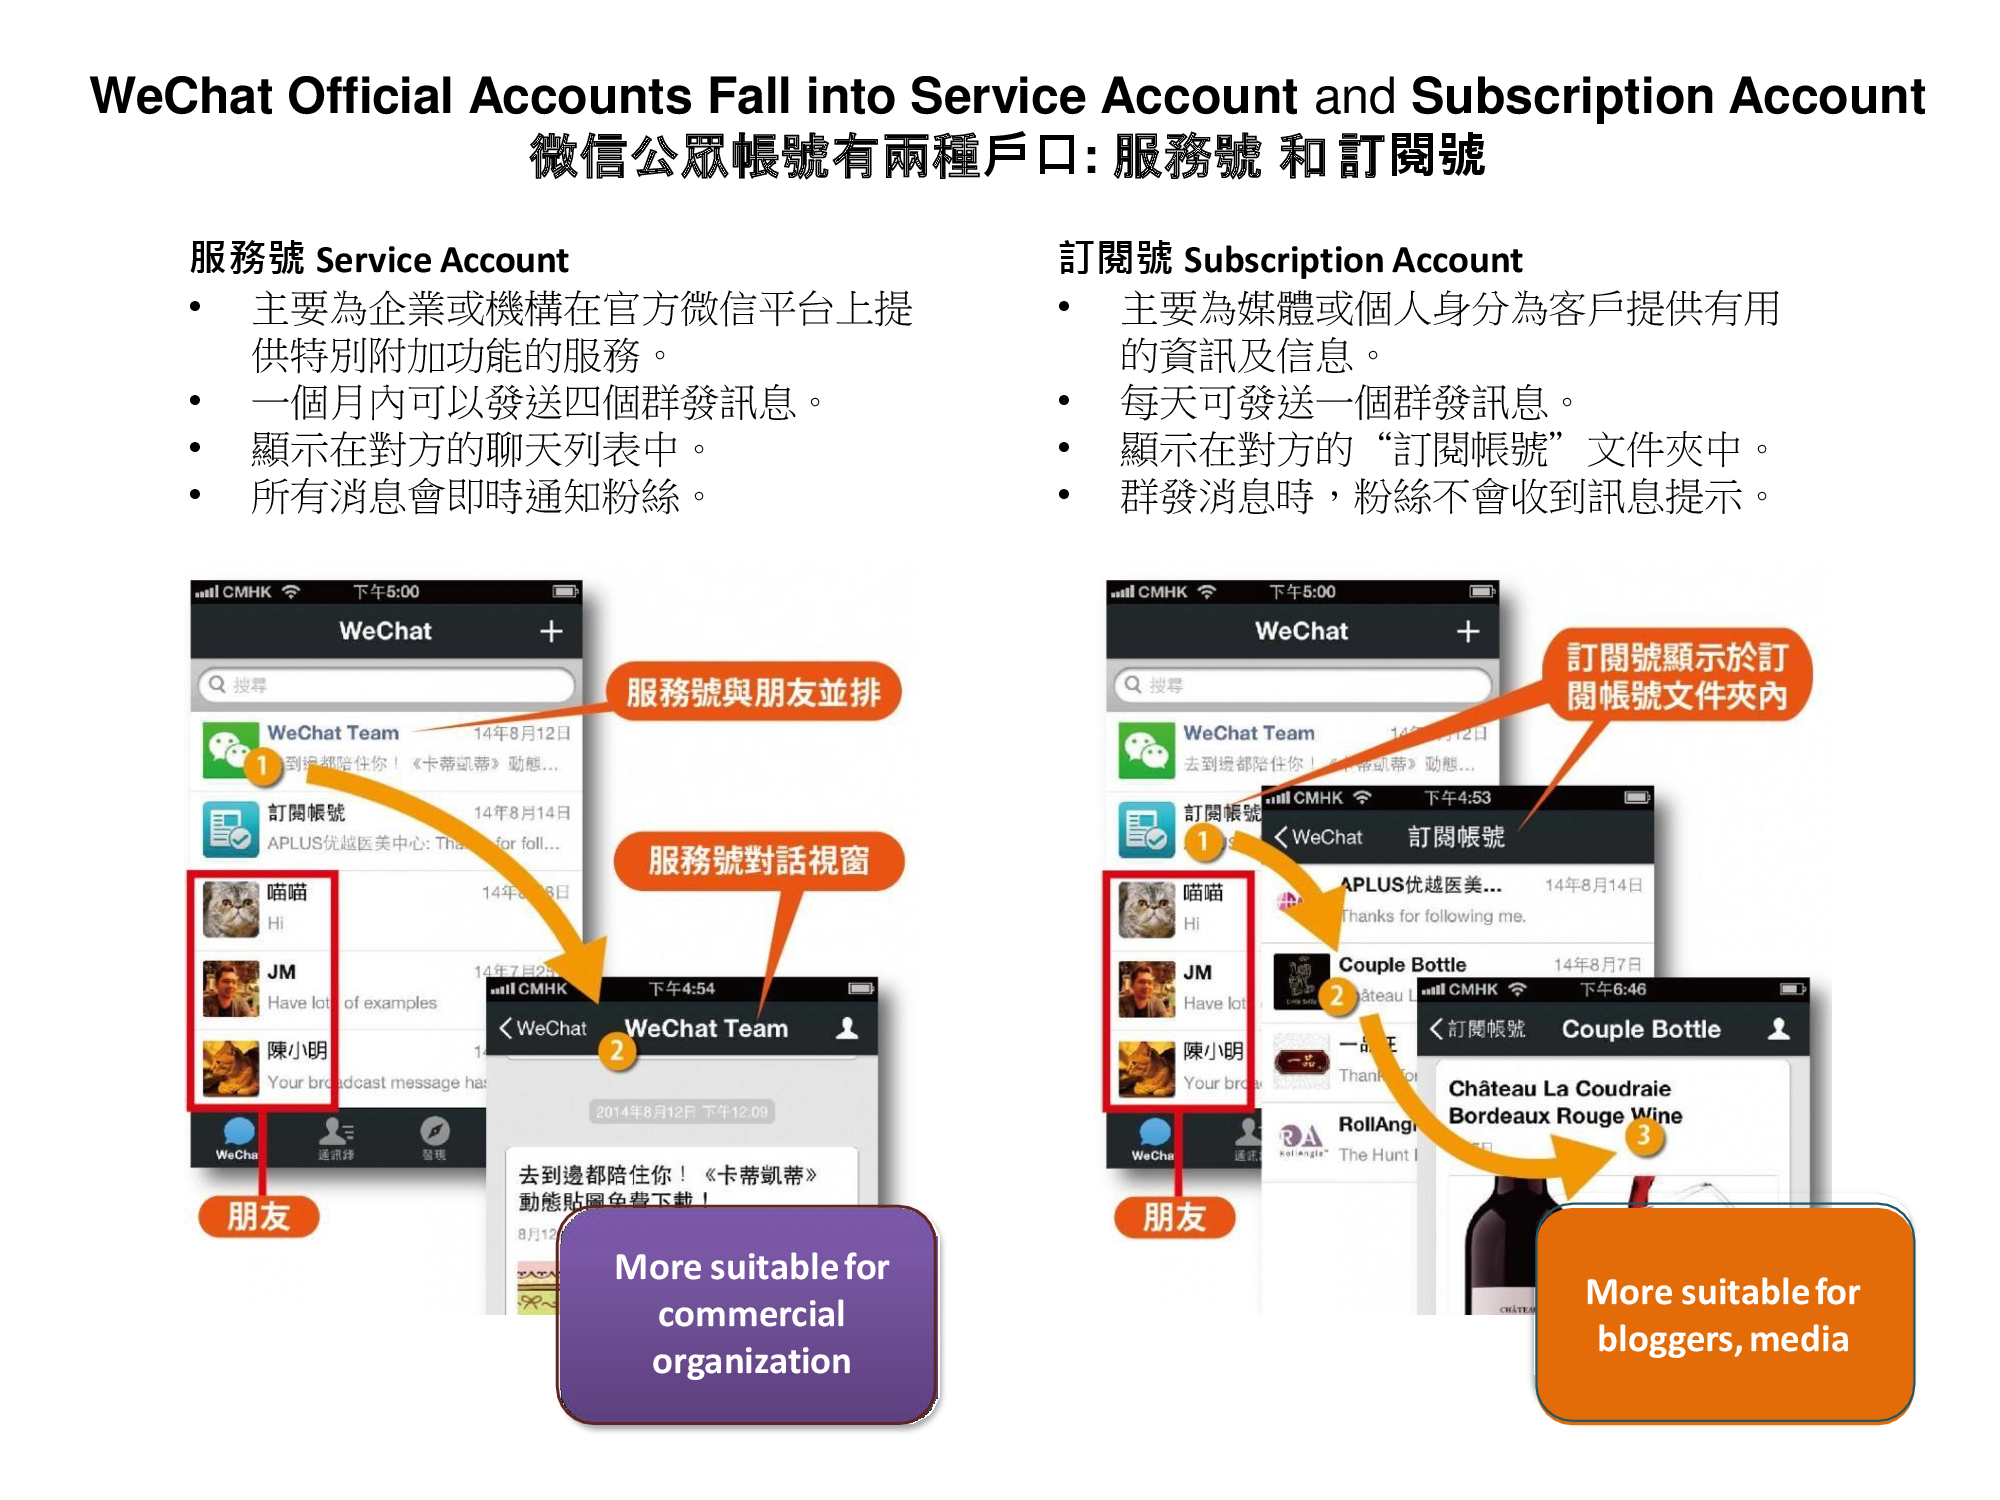 Wechat-official-accounts-Fall-into-service-account-and-subscription-account